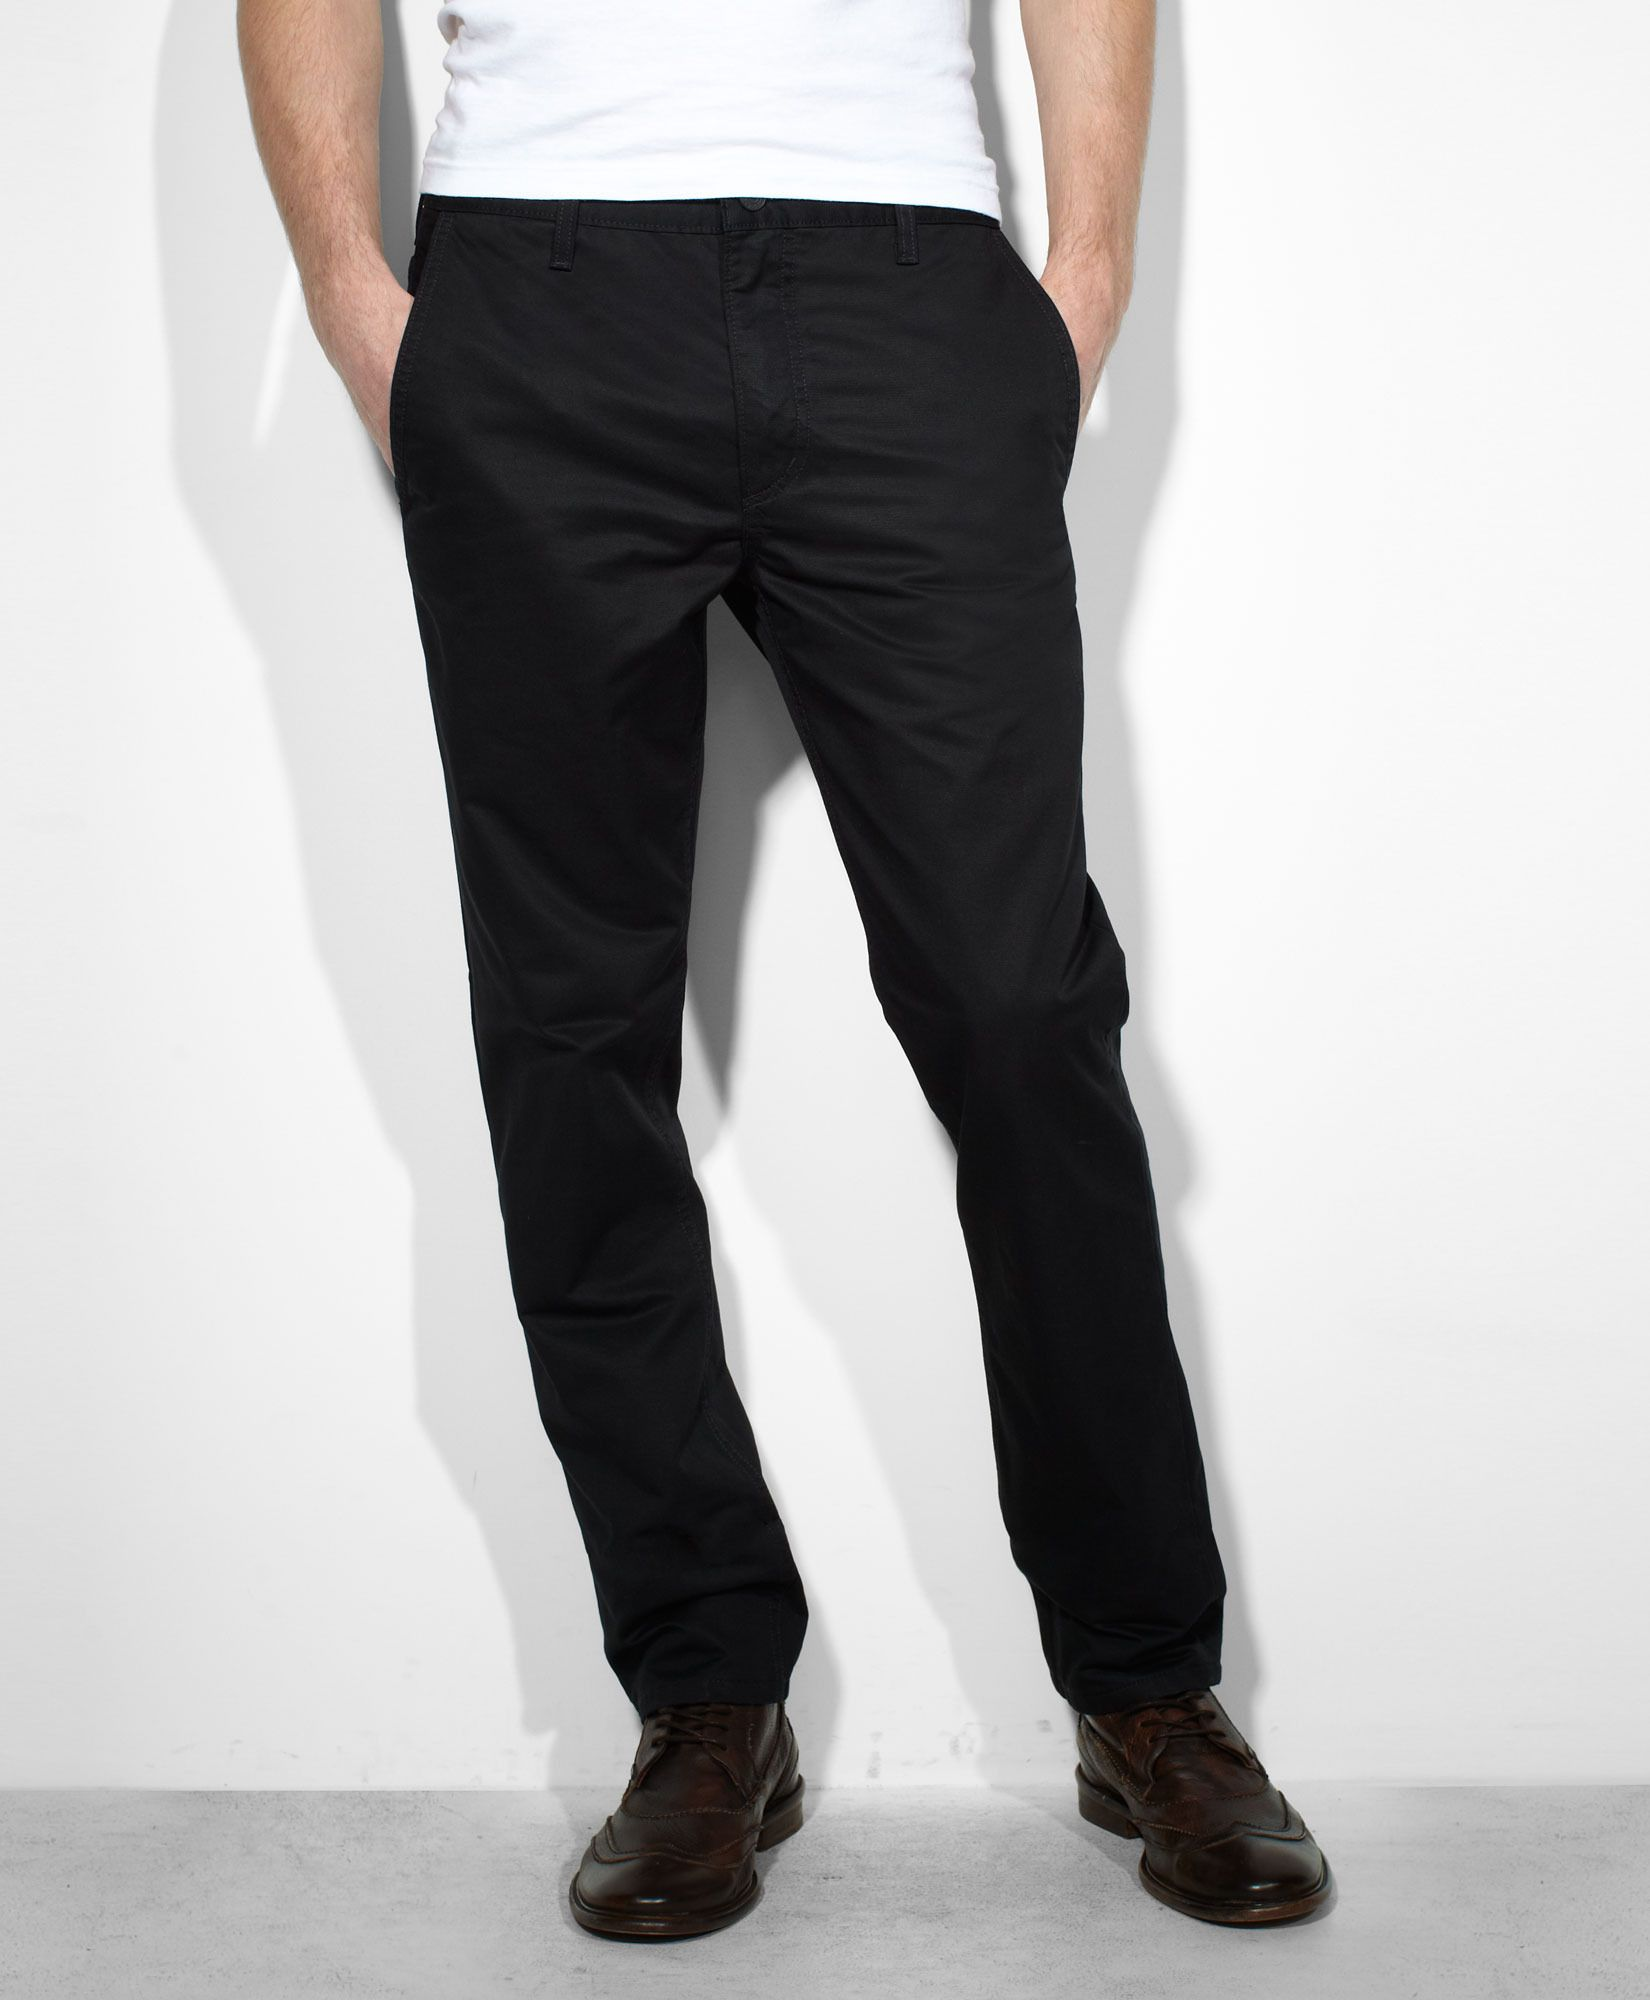 4ed14b70fcd Levi's 511™ Slim Fit Hybrid Trousers - Black - Jeans | Christmas ...